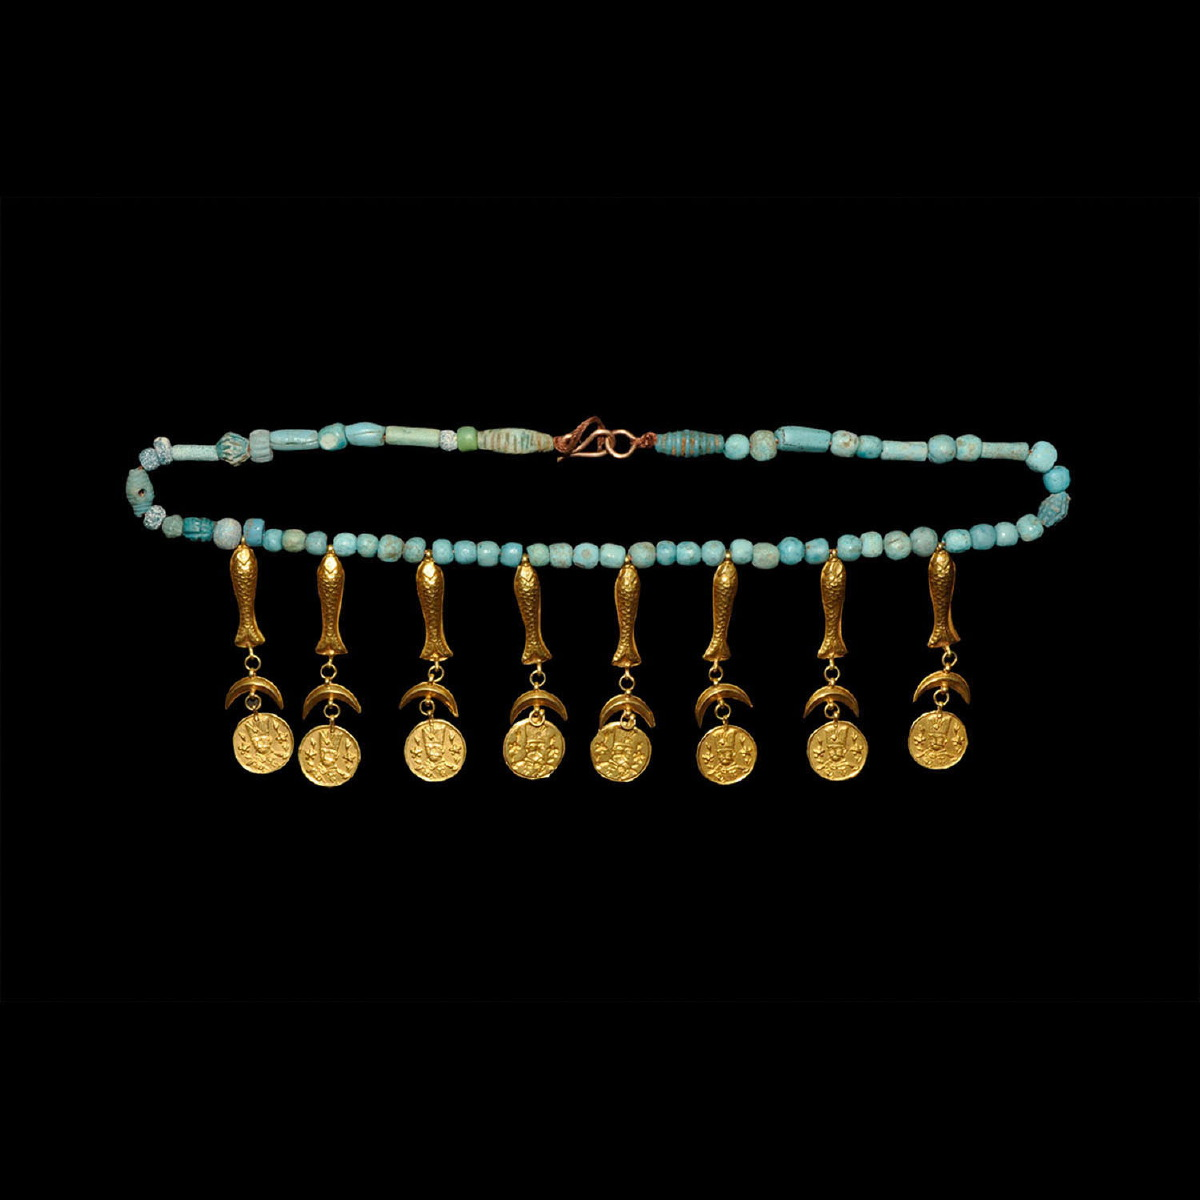 Photo of necklace-gold-and-turquoise